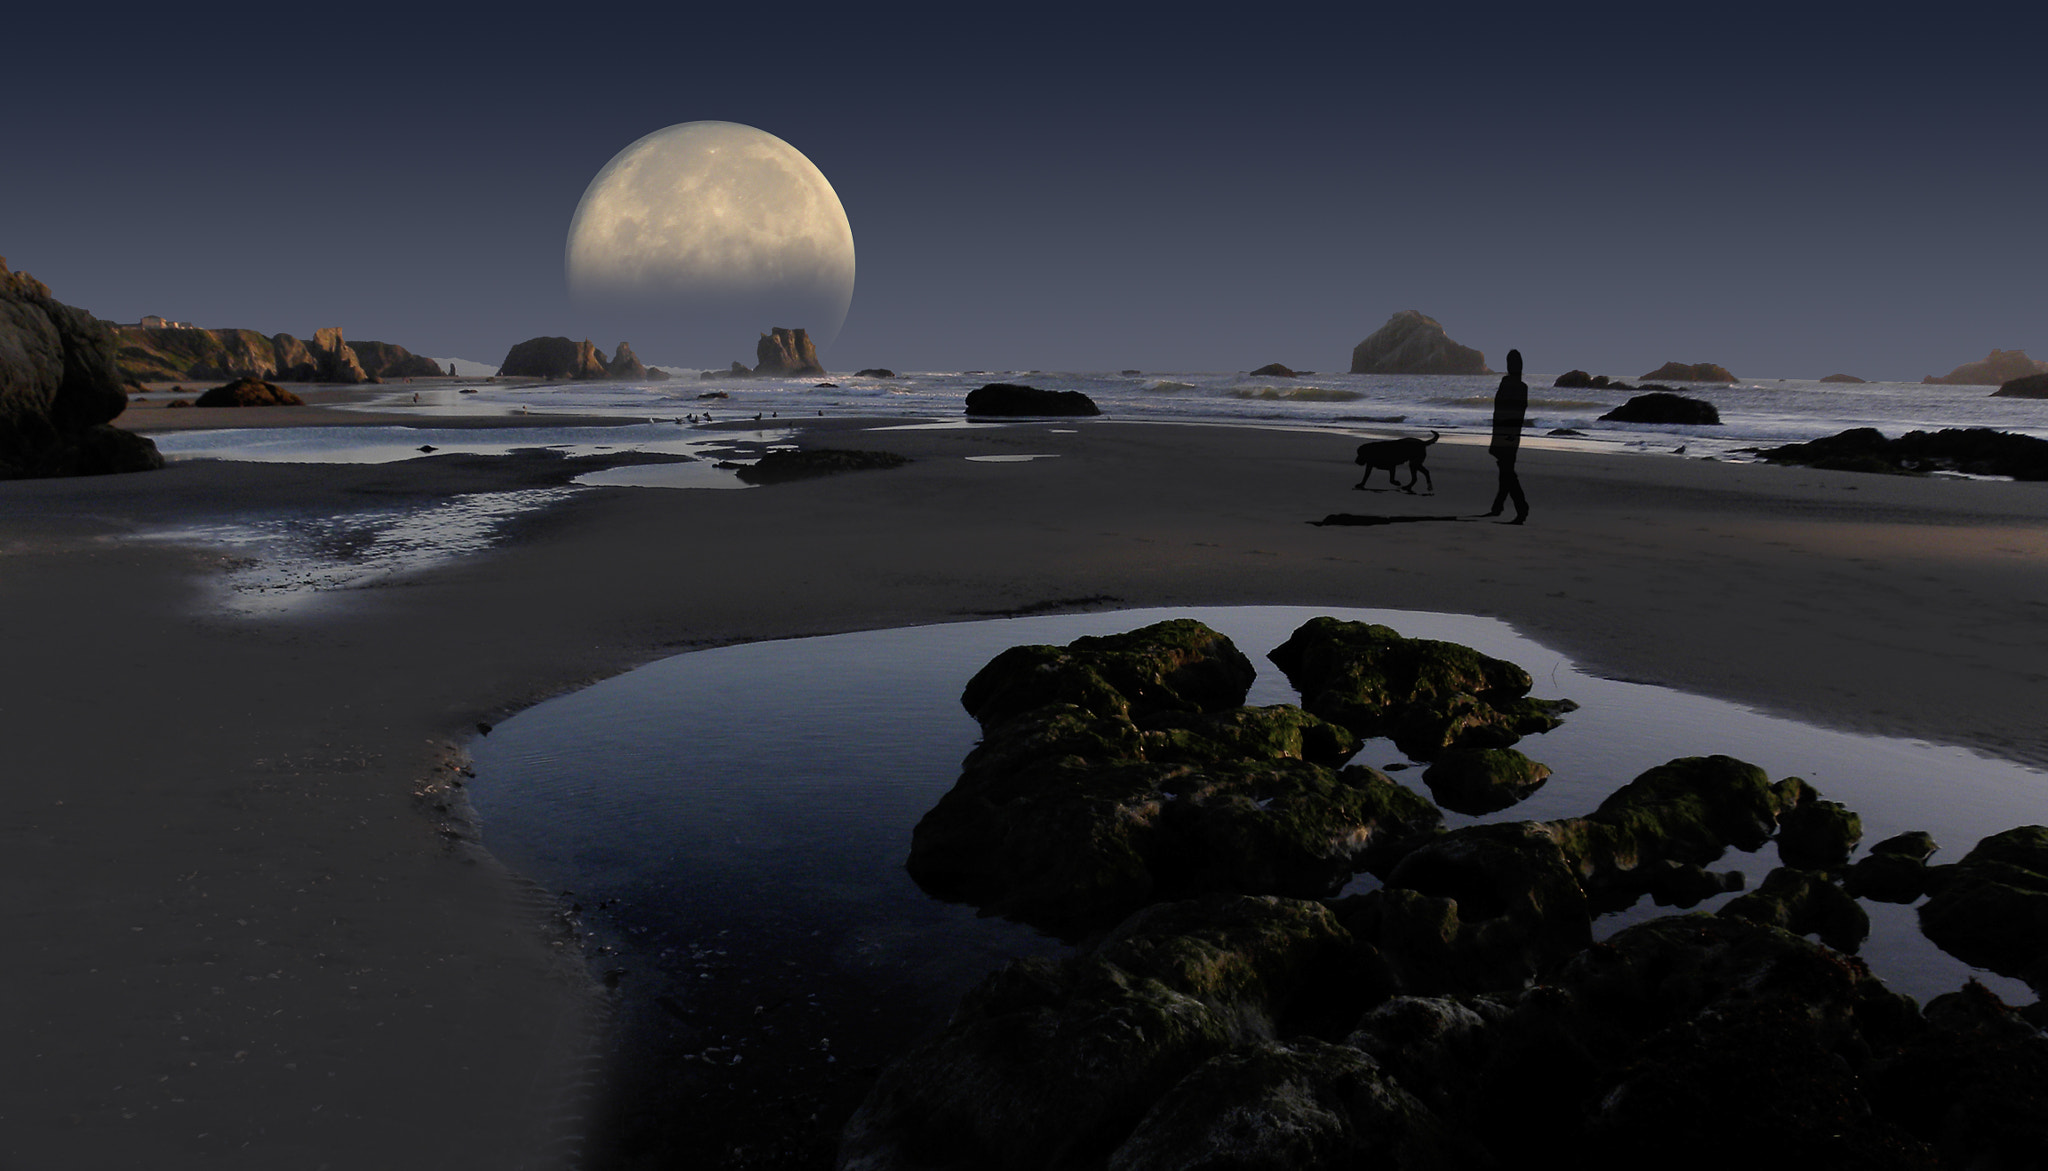 Photograph 2724 by peter holme iii on 500px